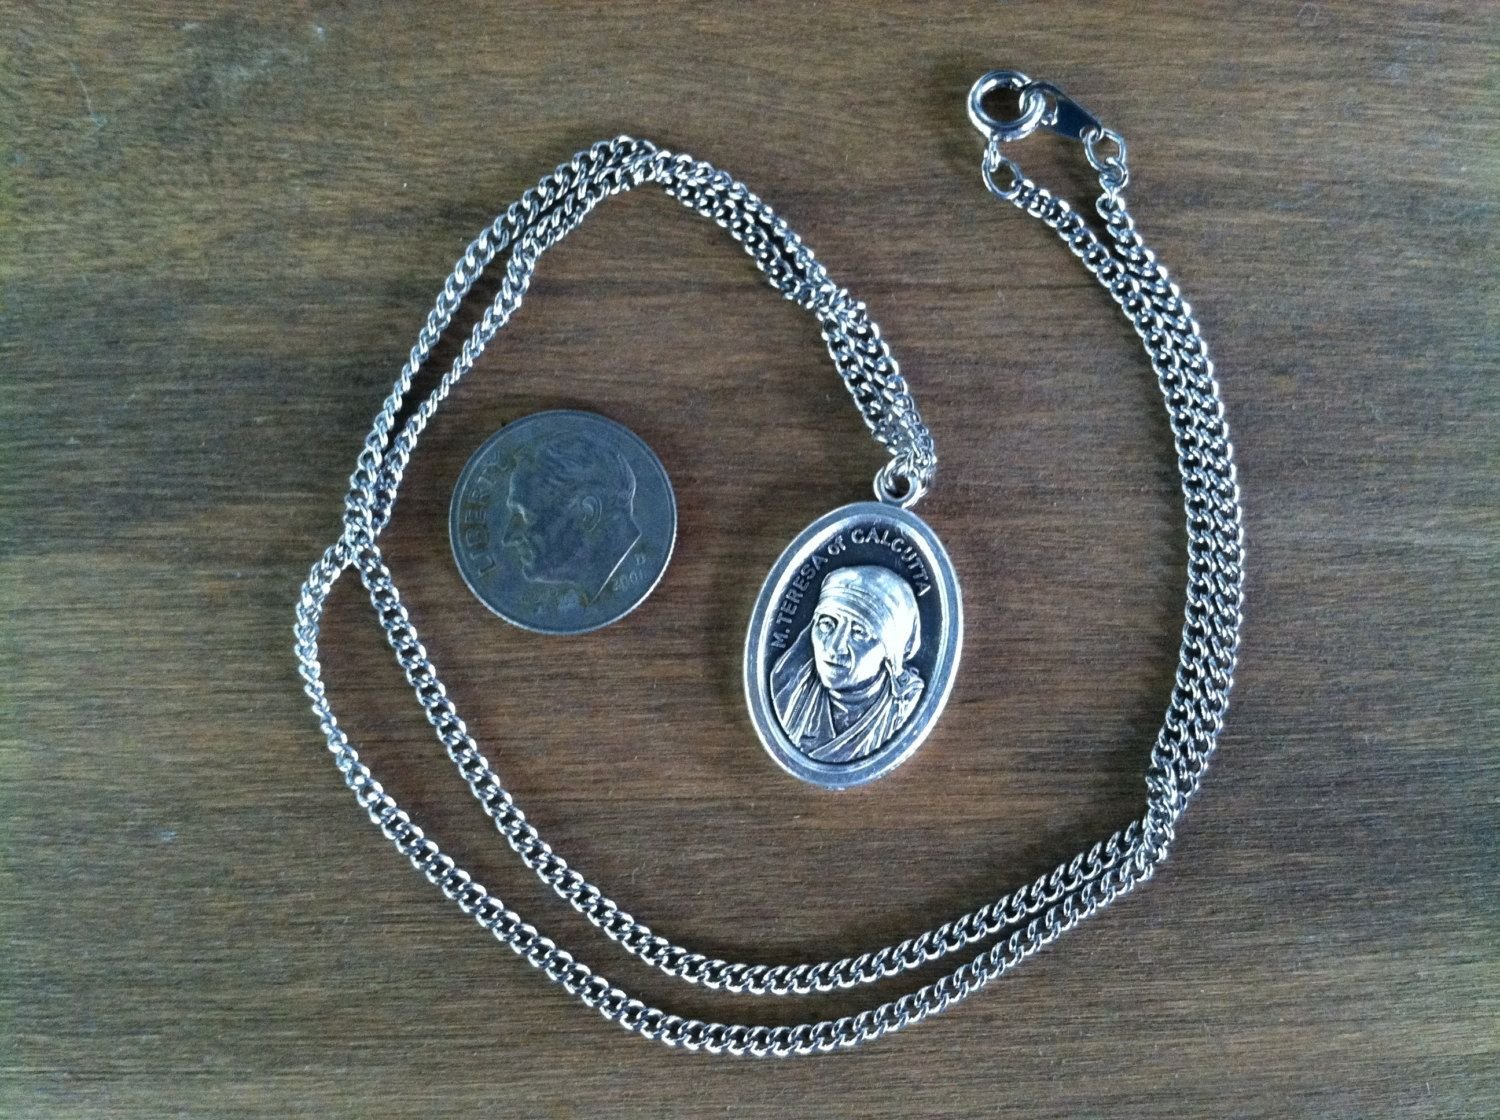 Mother teresa of calcutta holy medal necklace catholic